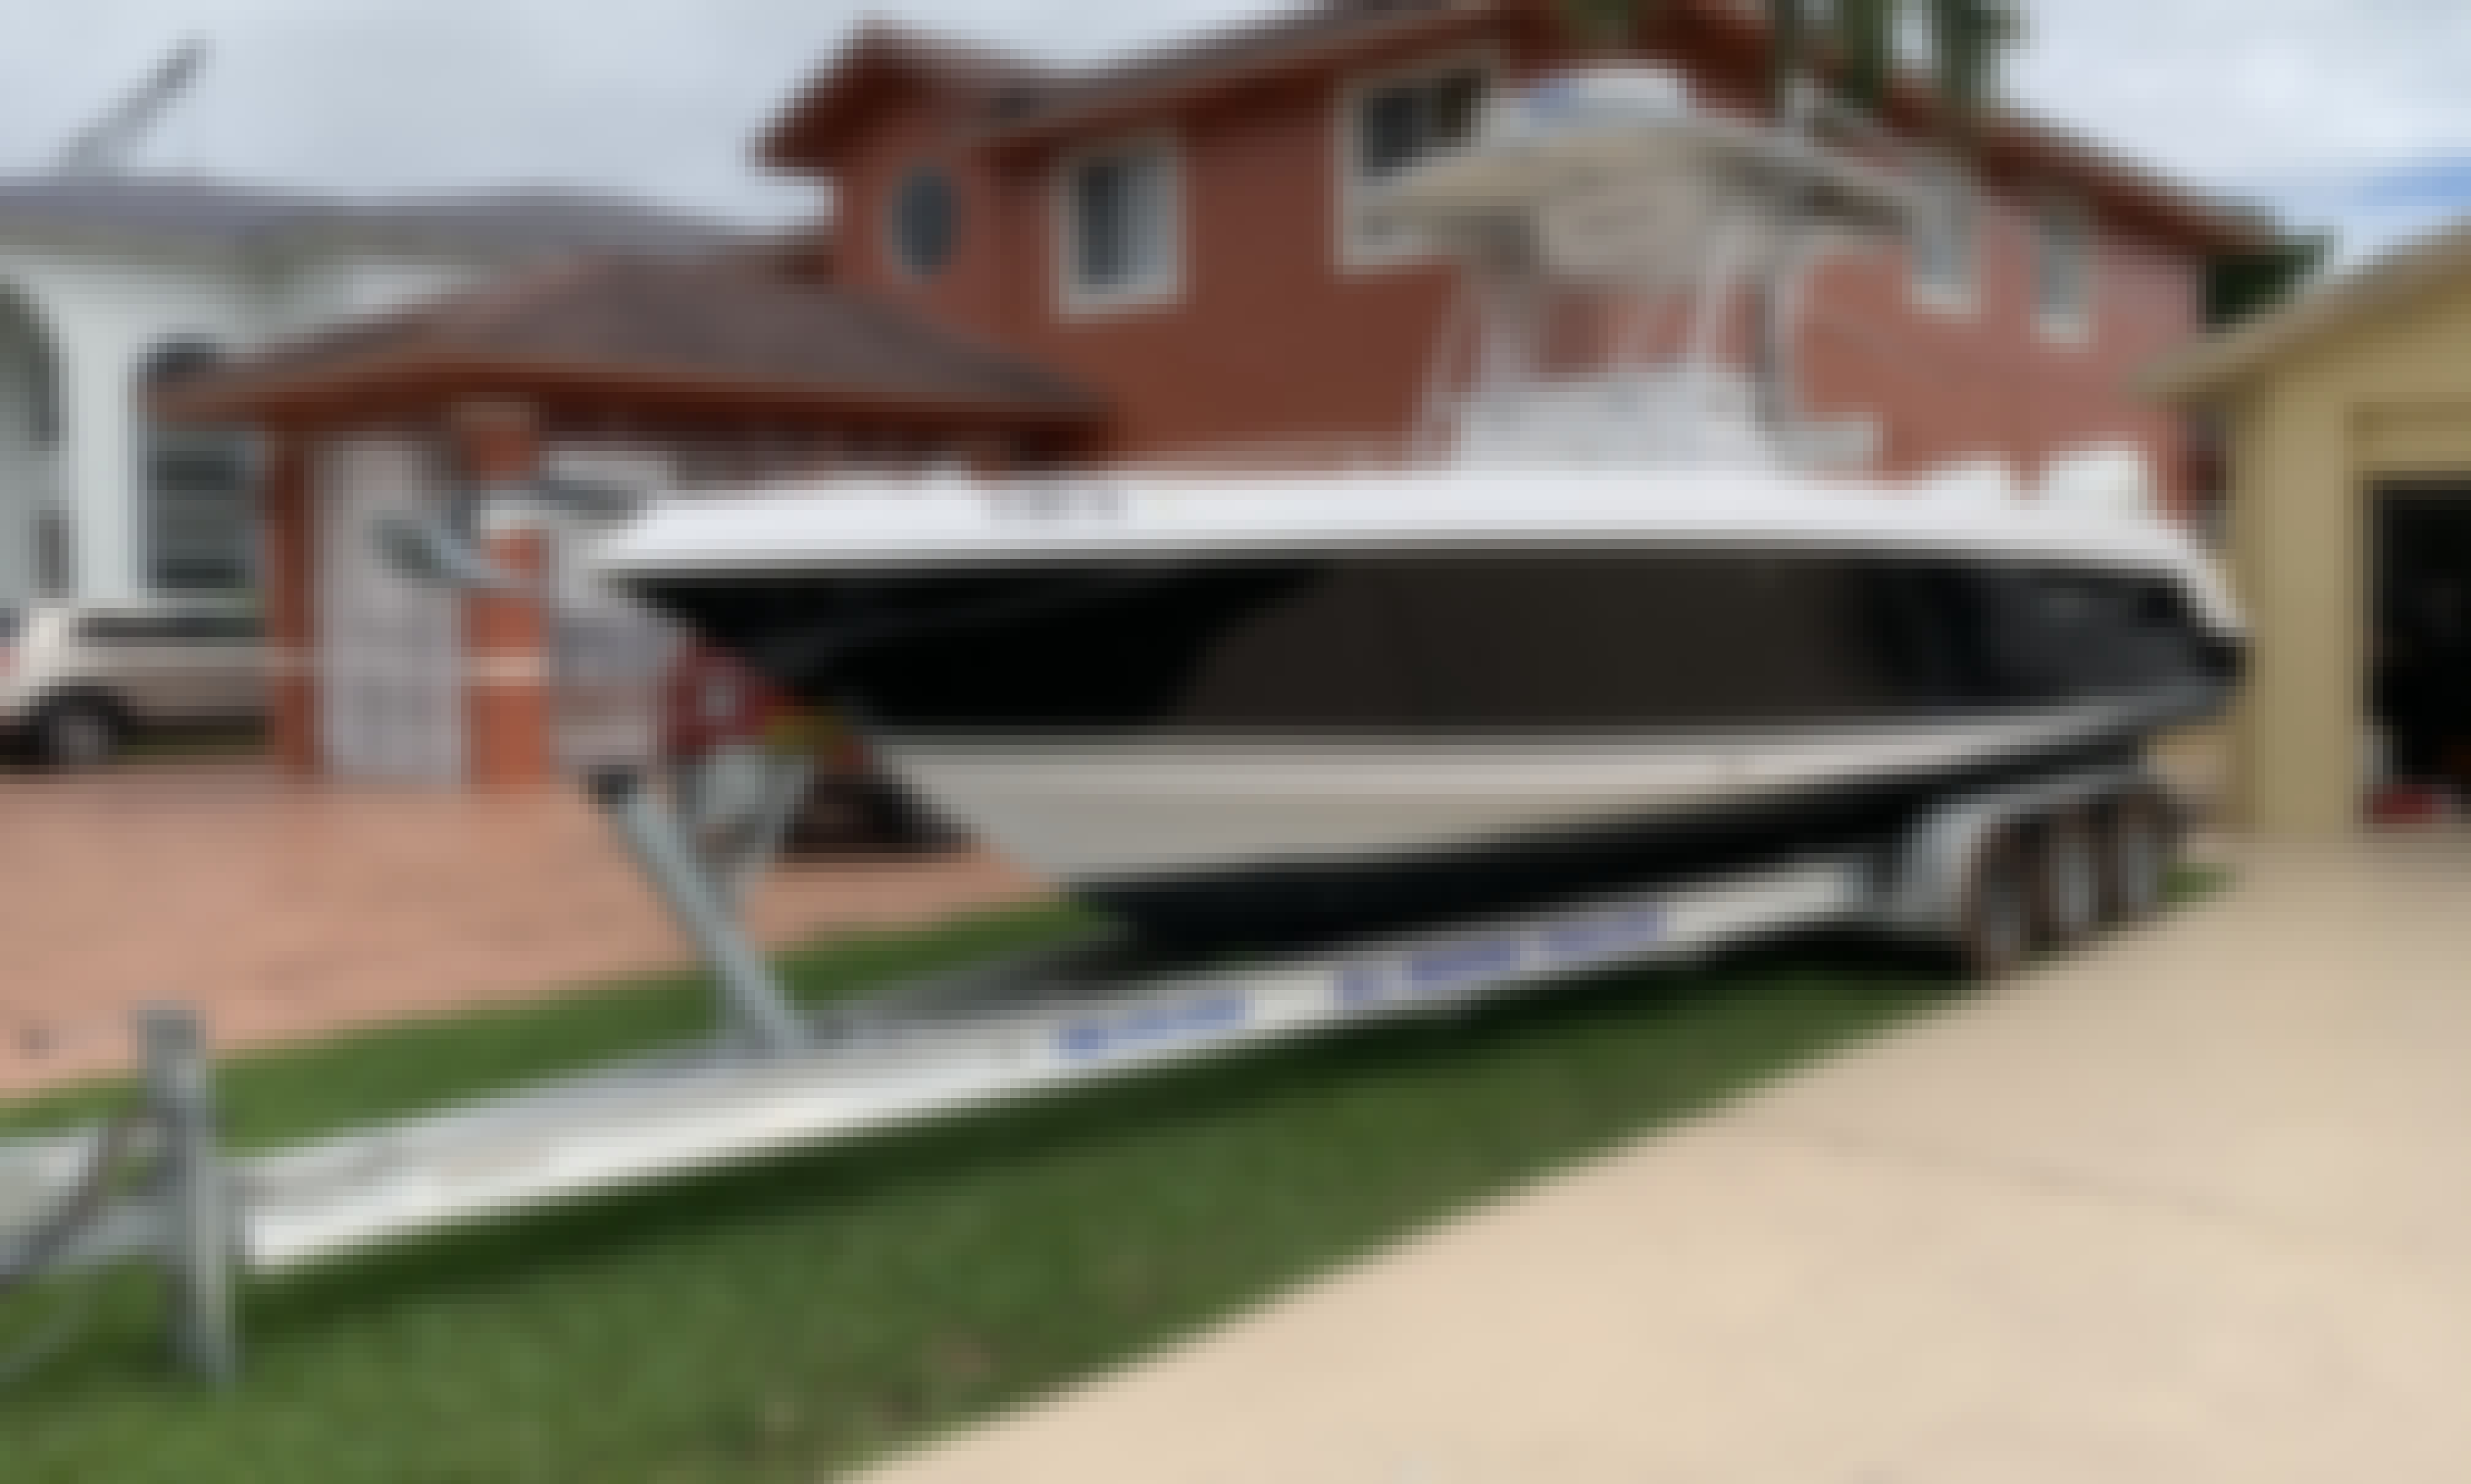 2008 proliner 29 super sport 10 Guests ,Captain include with full day rental